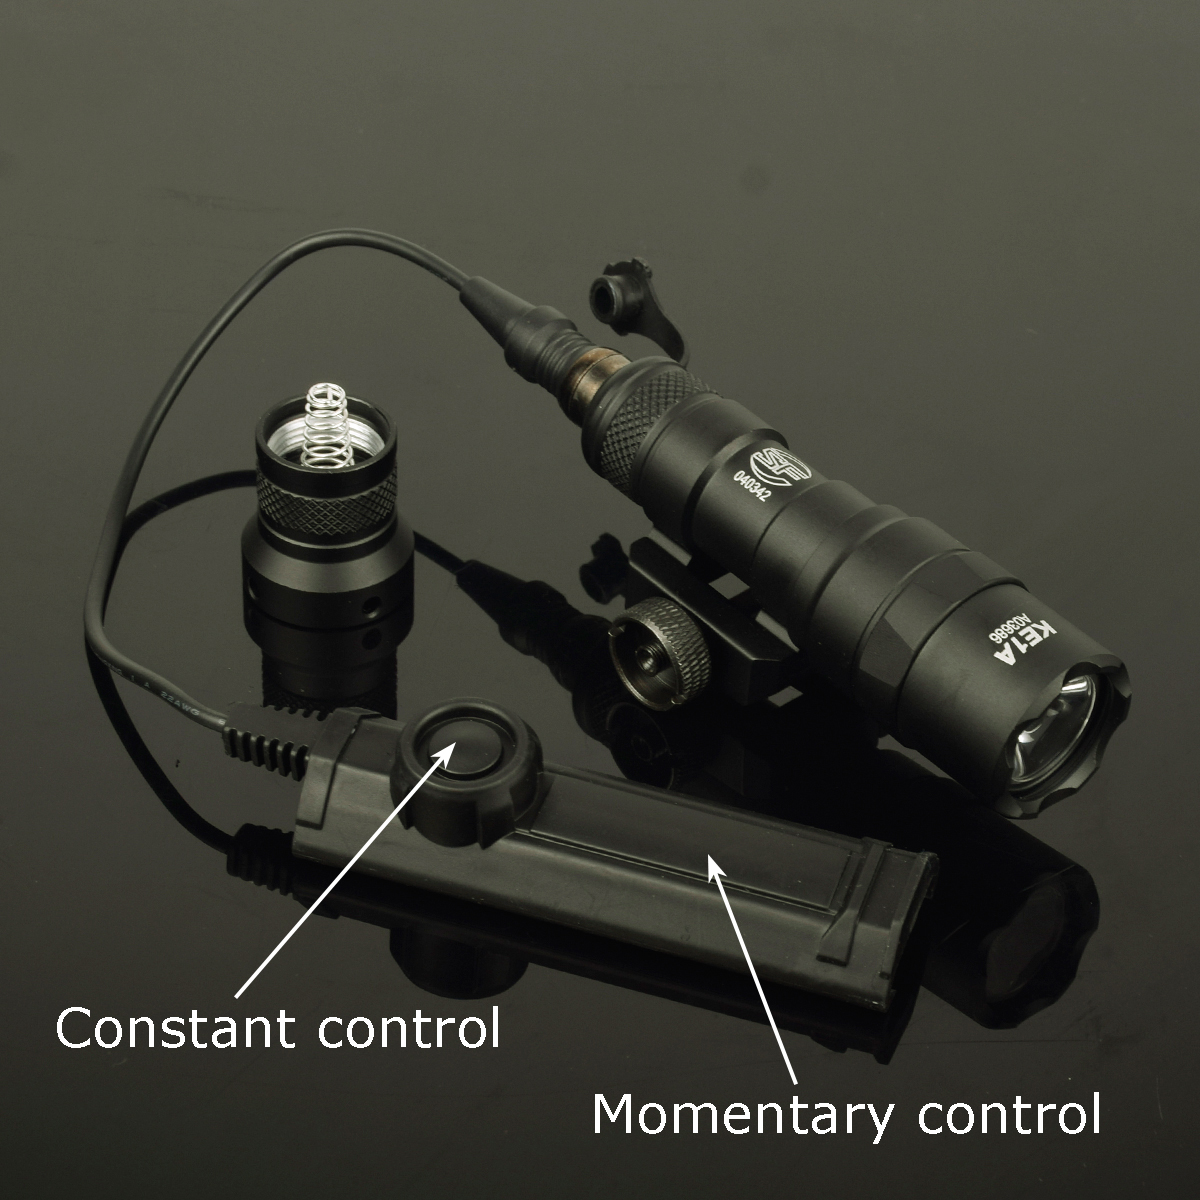 Tactical M300 M300B MINI Scout Light Rifle Hunting Flashlight 400 Lumen Weapon Light LED Lanterna With Dual Function Tail Switch